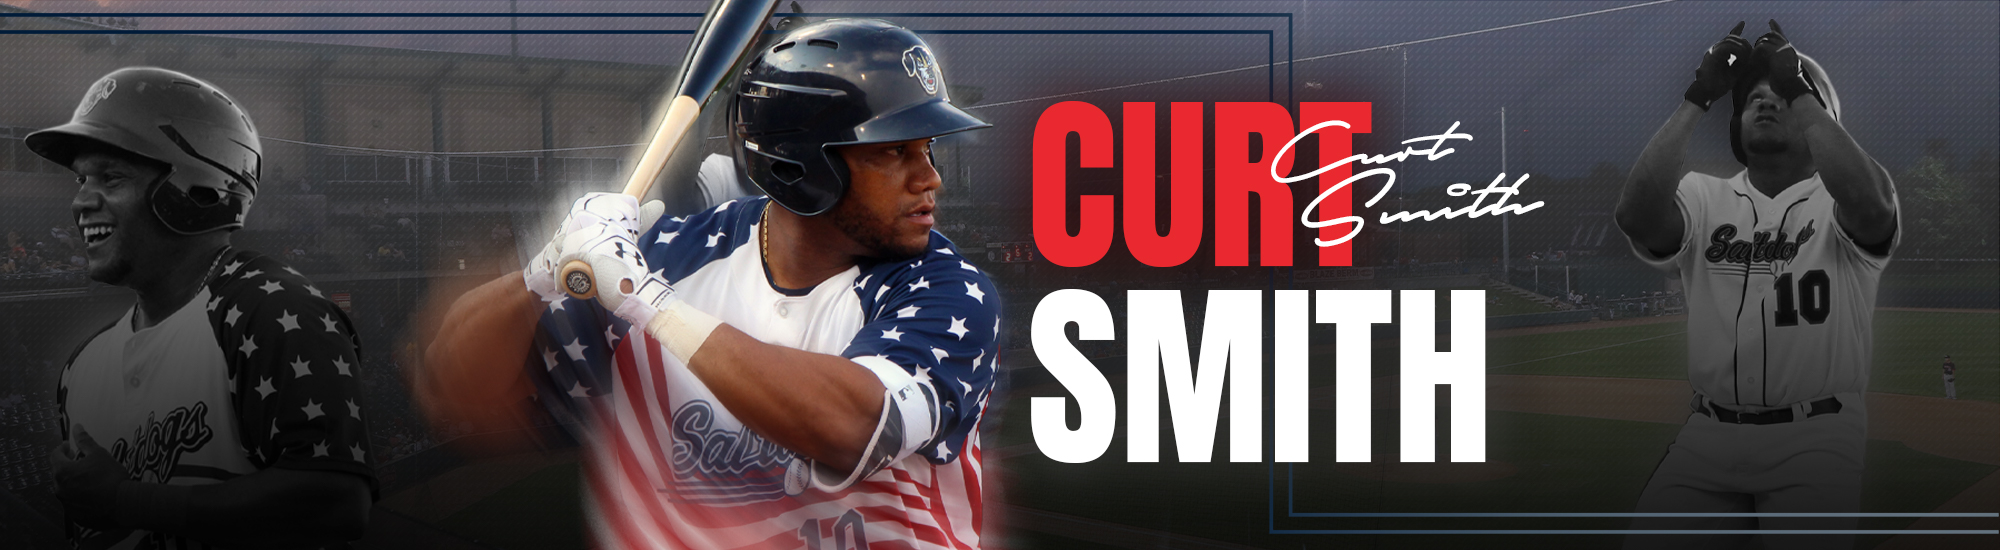 Saltdogs News - Curt Smith